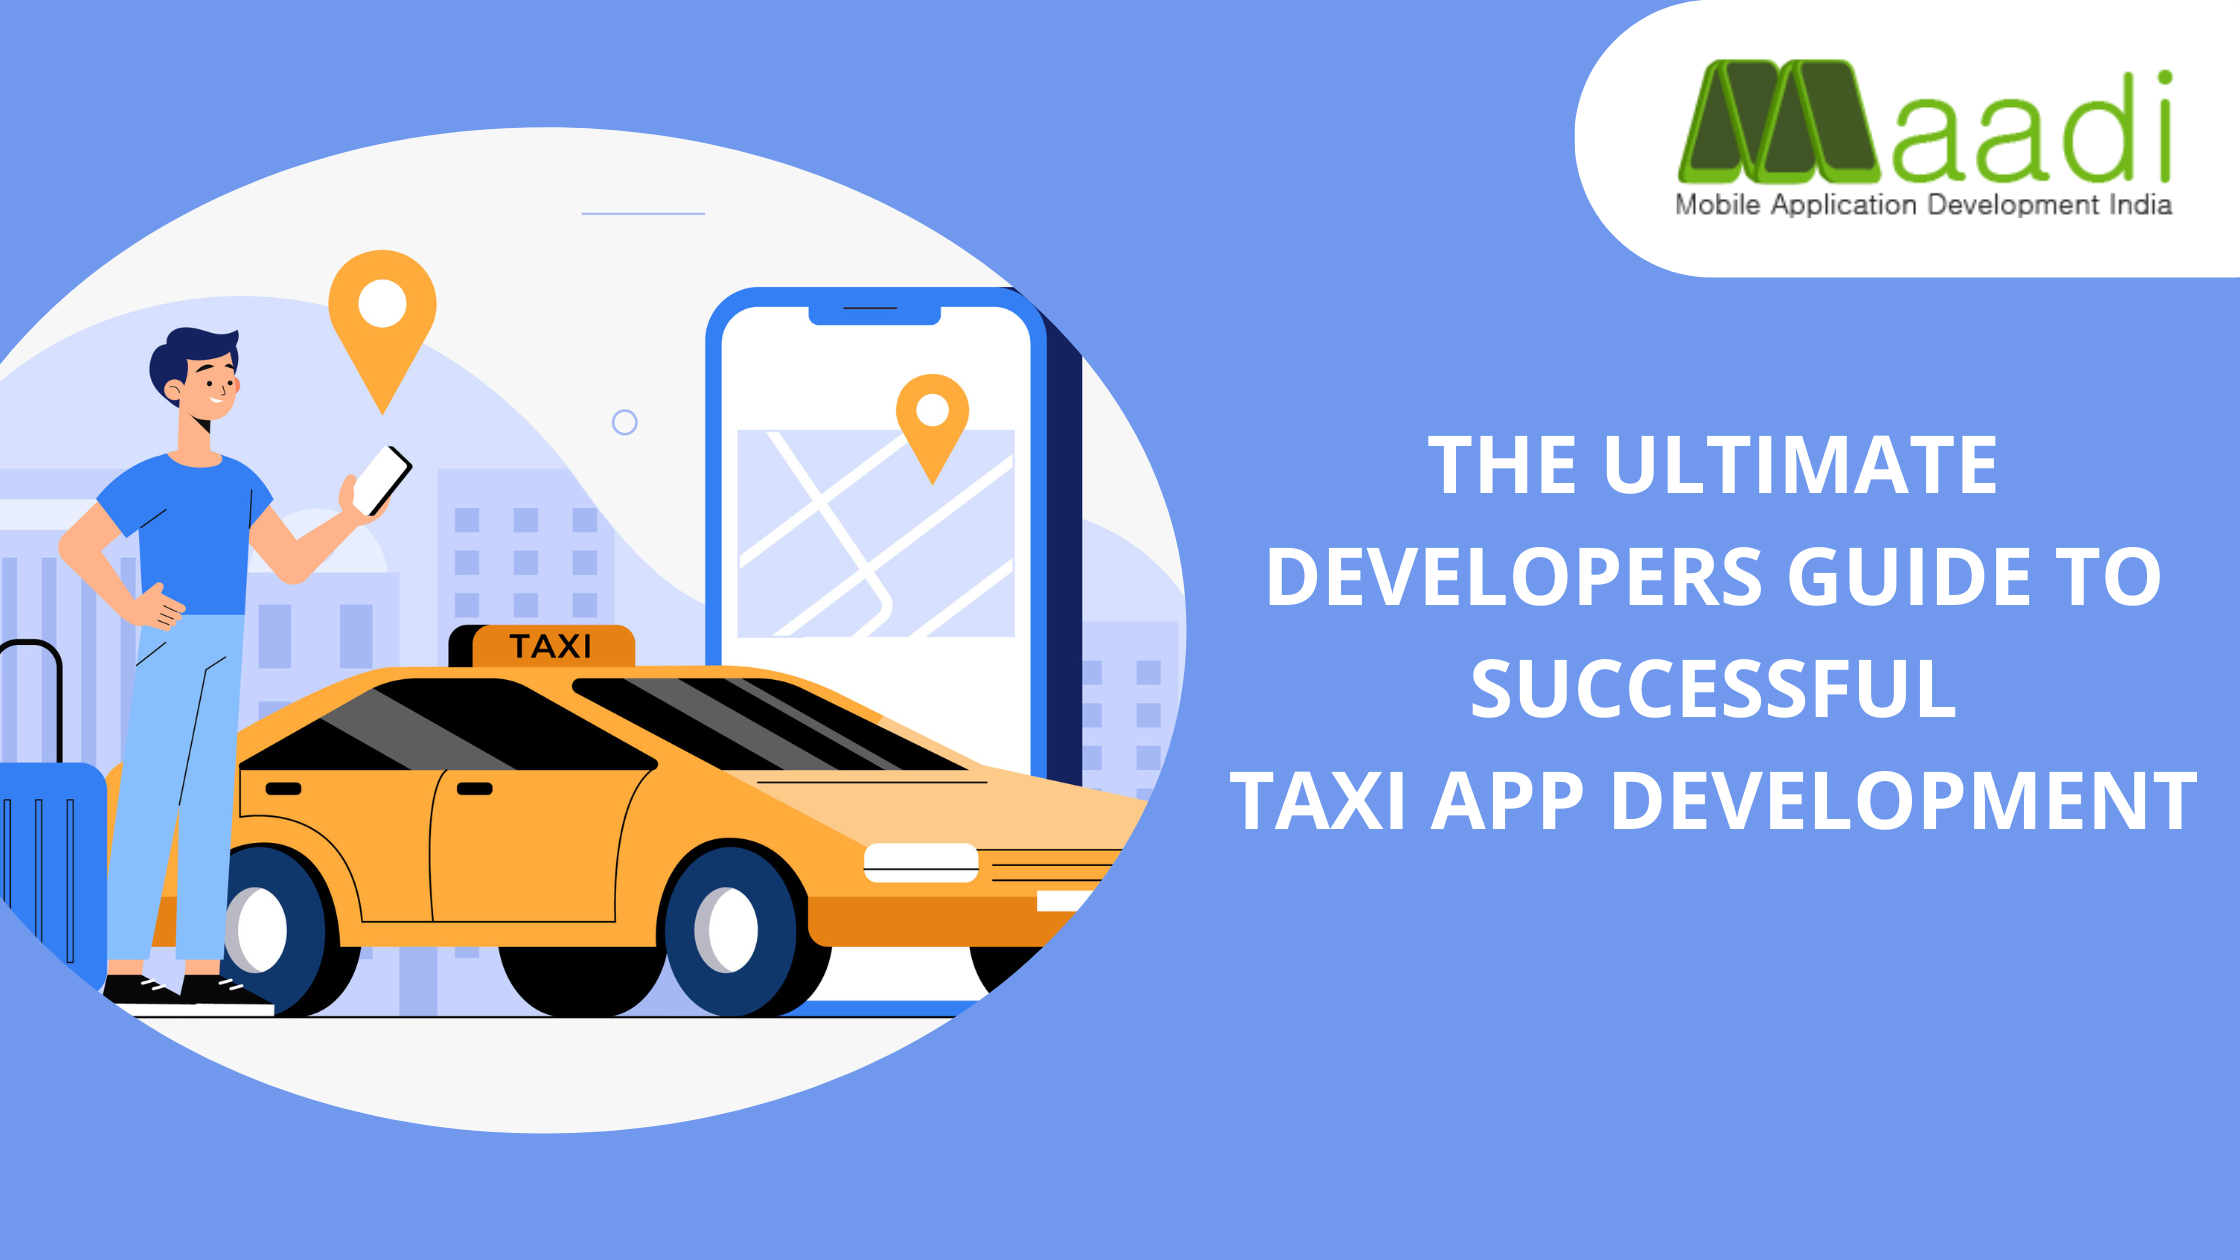 The Ultimate Developers Guide to Successful Taxi App Development